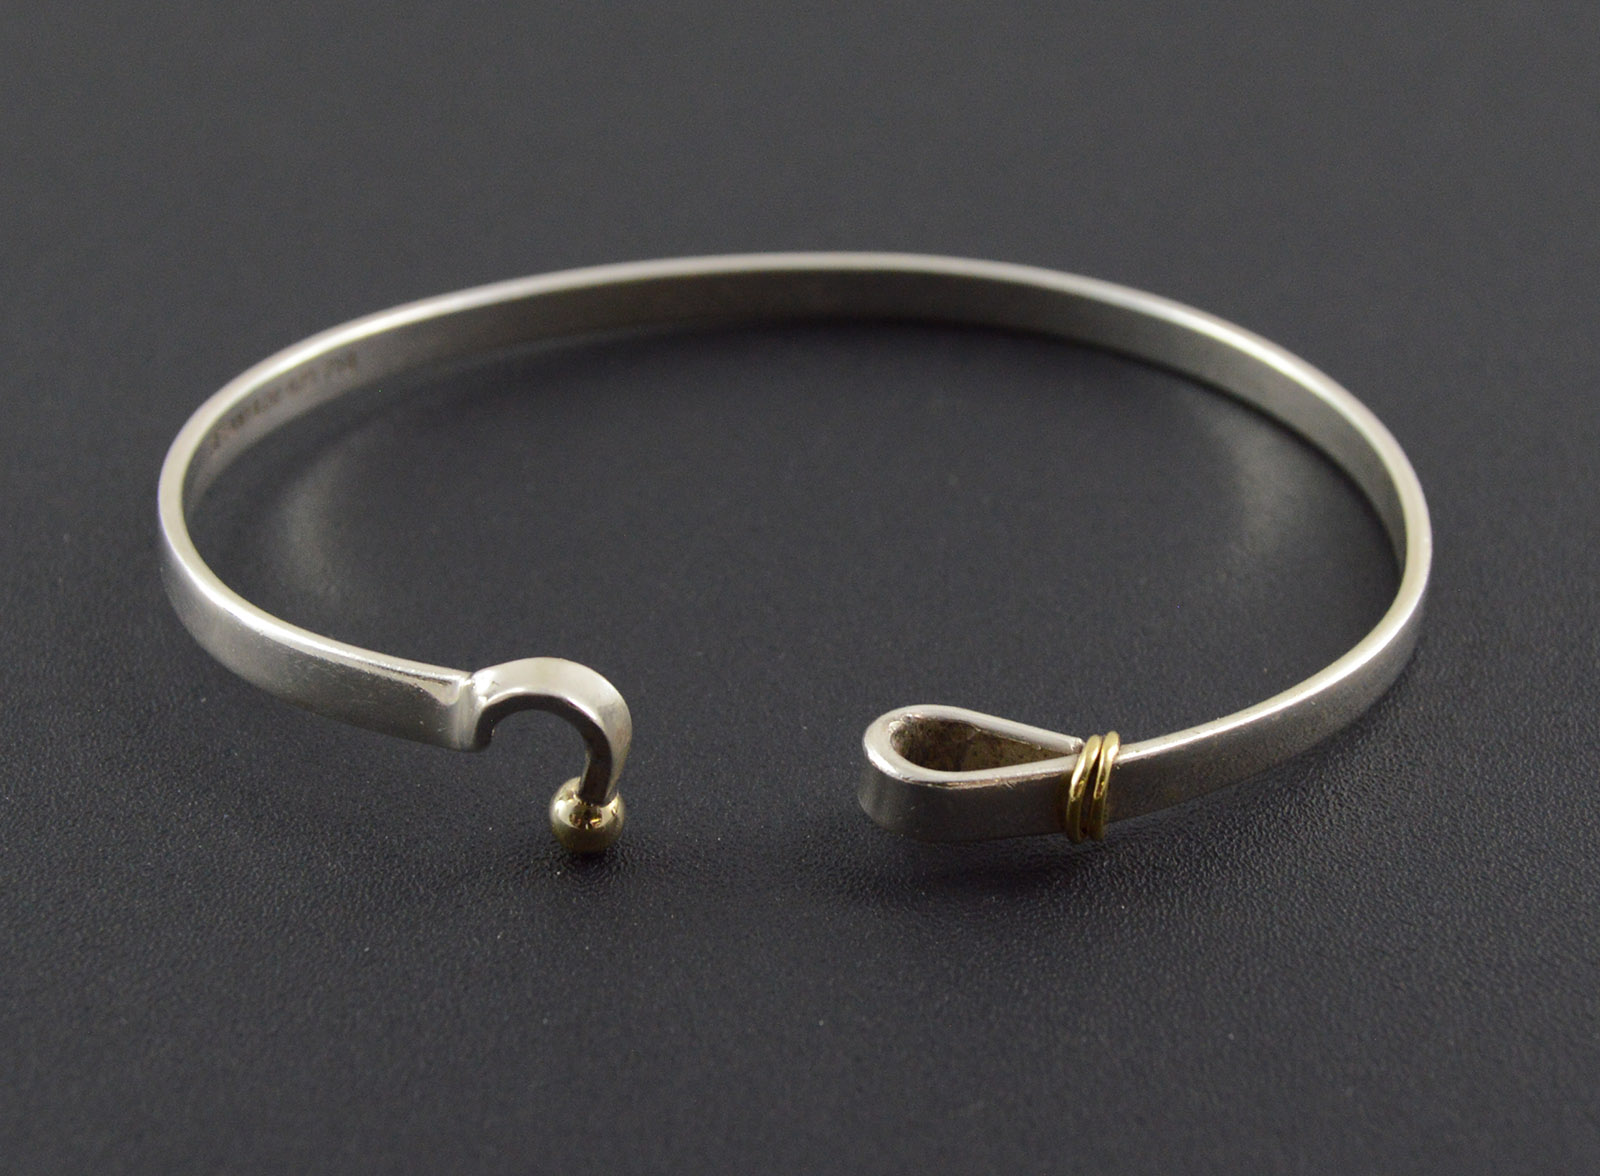 12 6g Solid Silver Tiffany Co Gold Accent Hook Latch Bangle Bracelet 2 3 Sterling Premium Marked 750 925